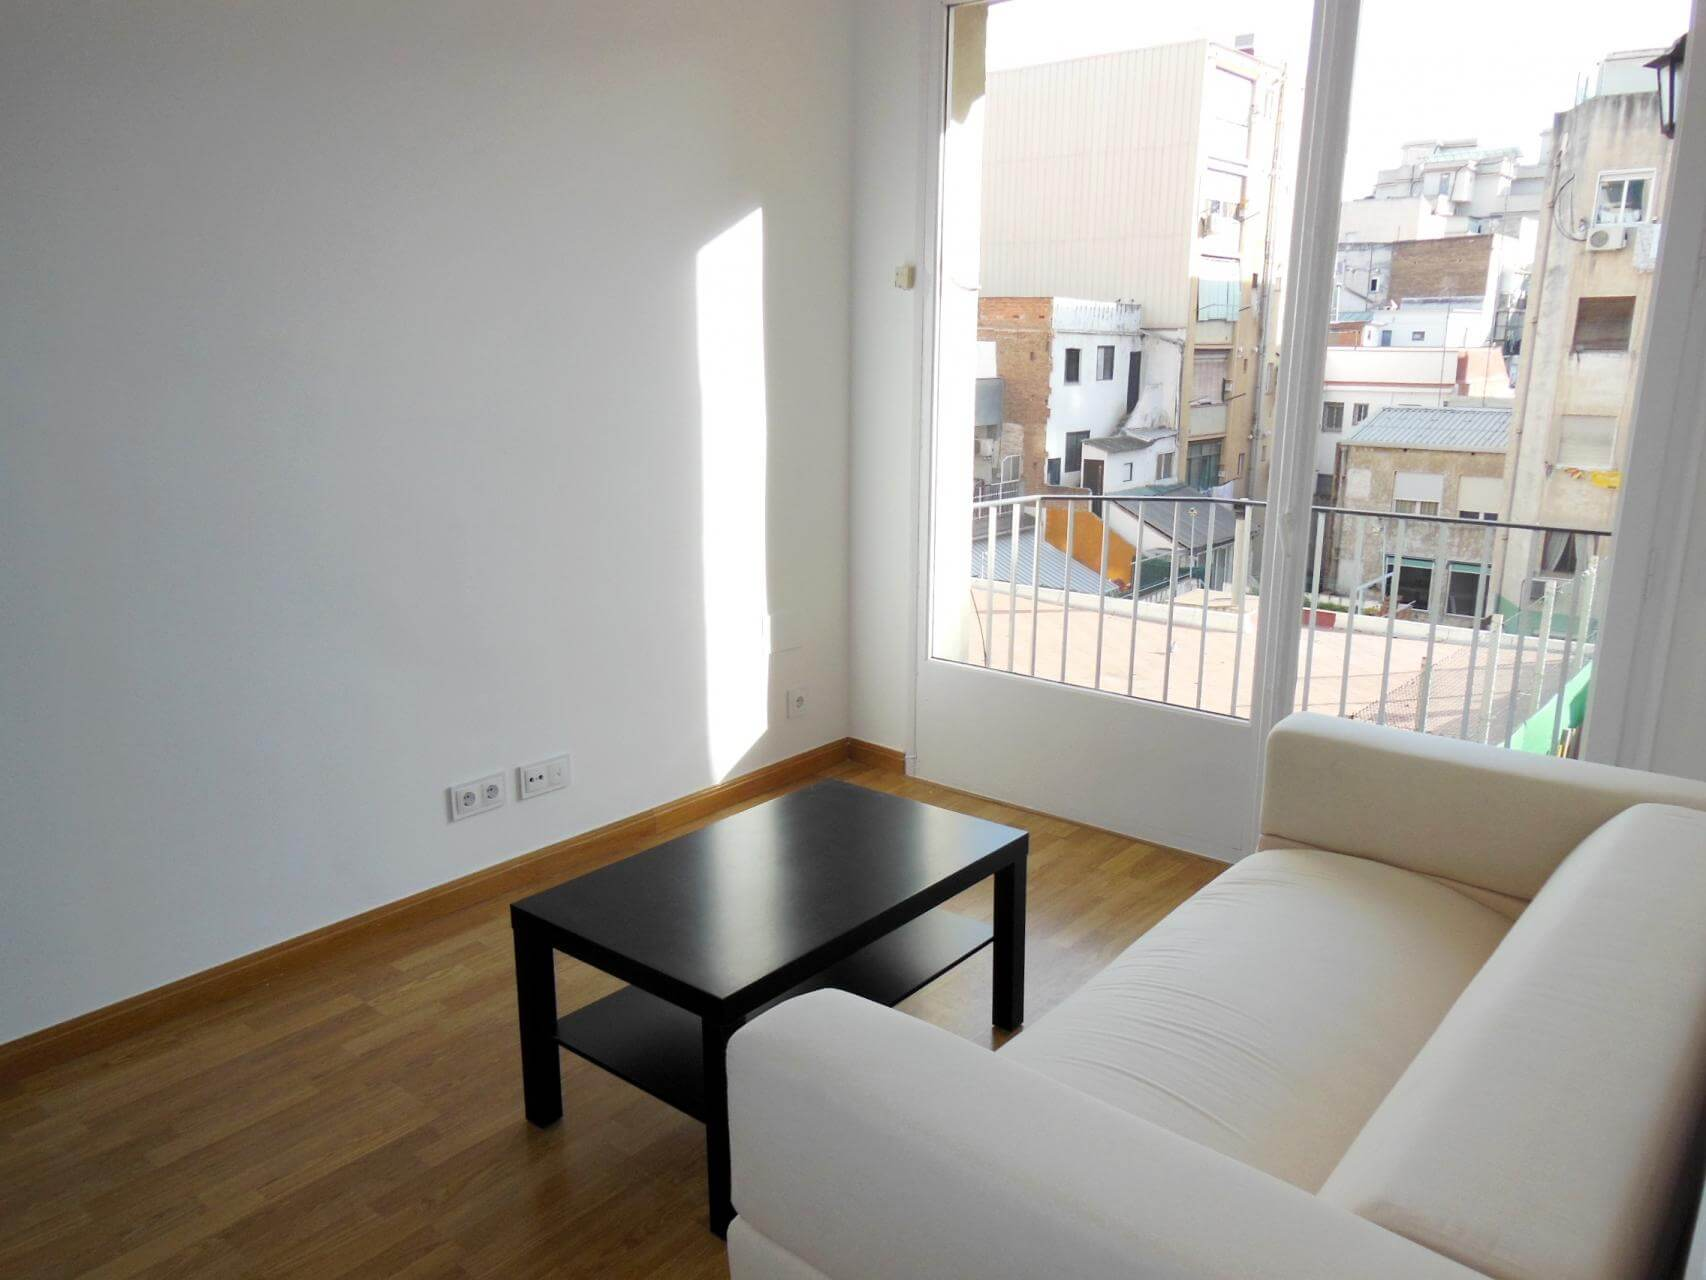 Piso en alquiler barcelona les corts can bruixa joan g ell for Piso alquiler les corts